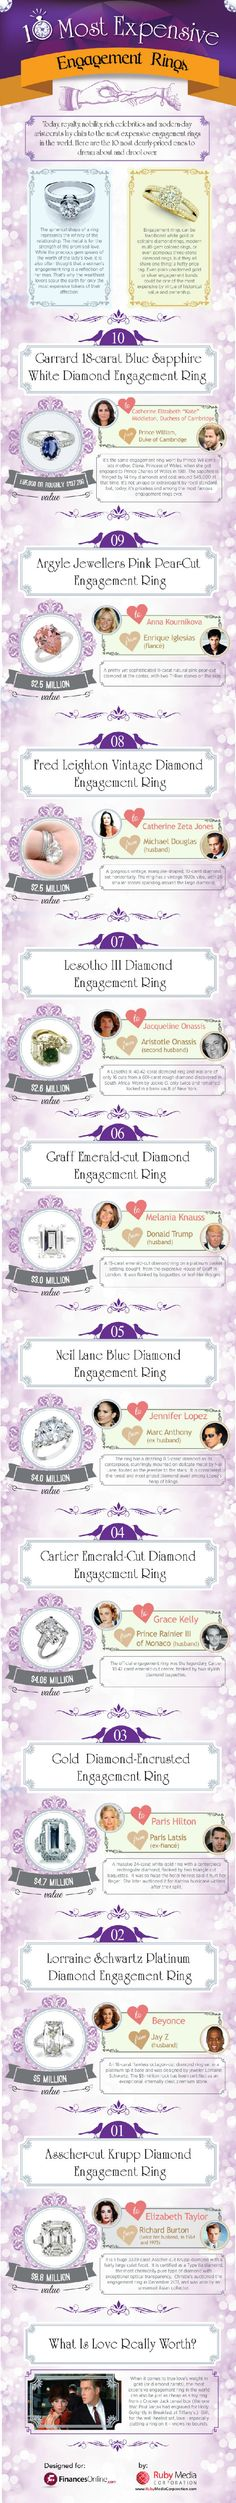 See the Most Expensive Celebrity Engagement Rings – Celeb Engagements | OK! Magazine